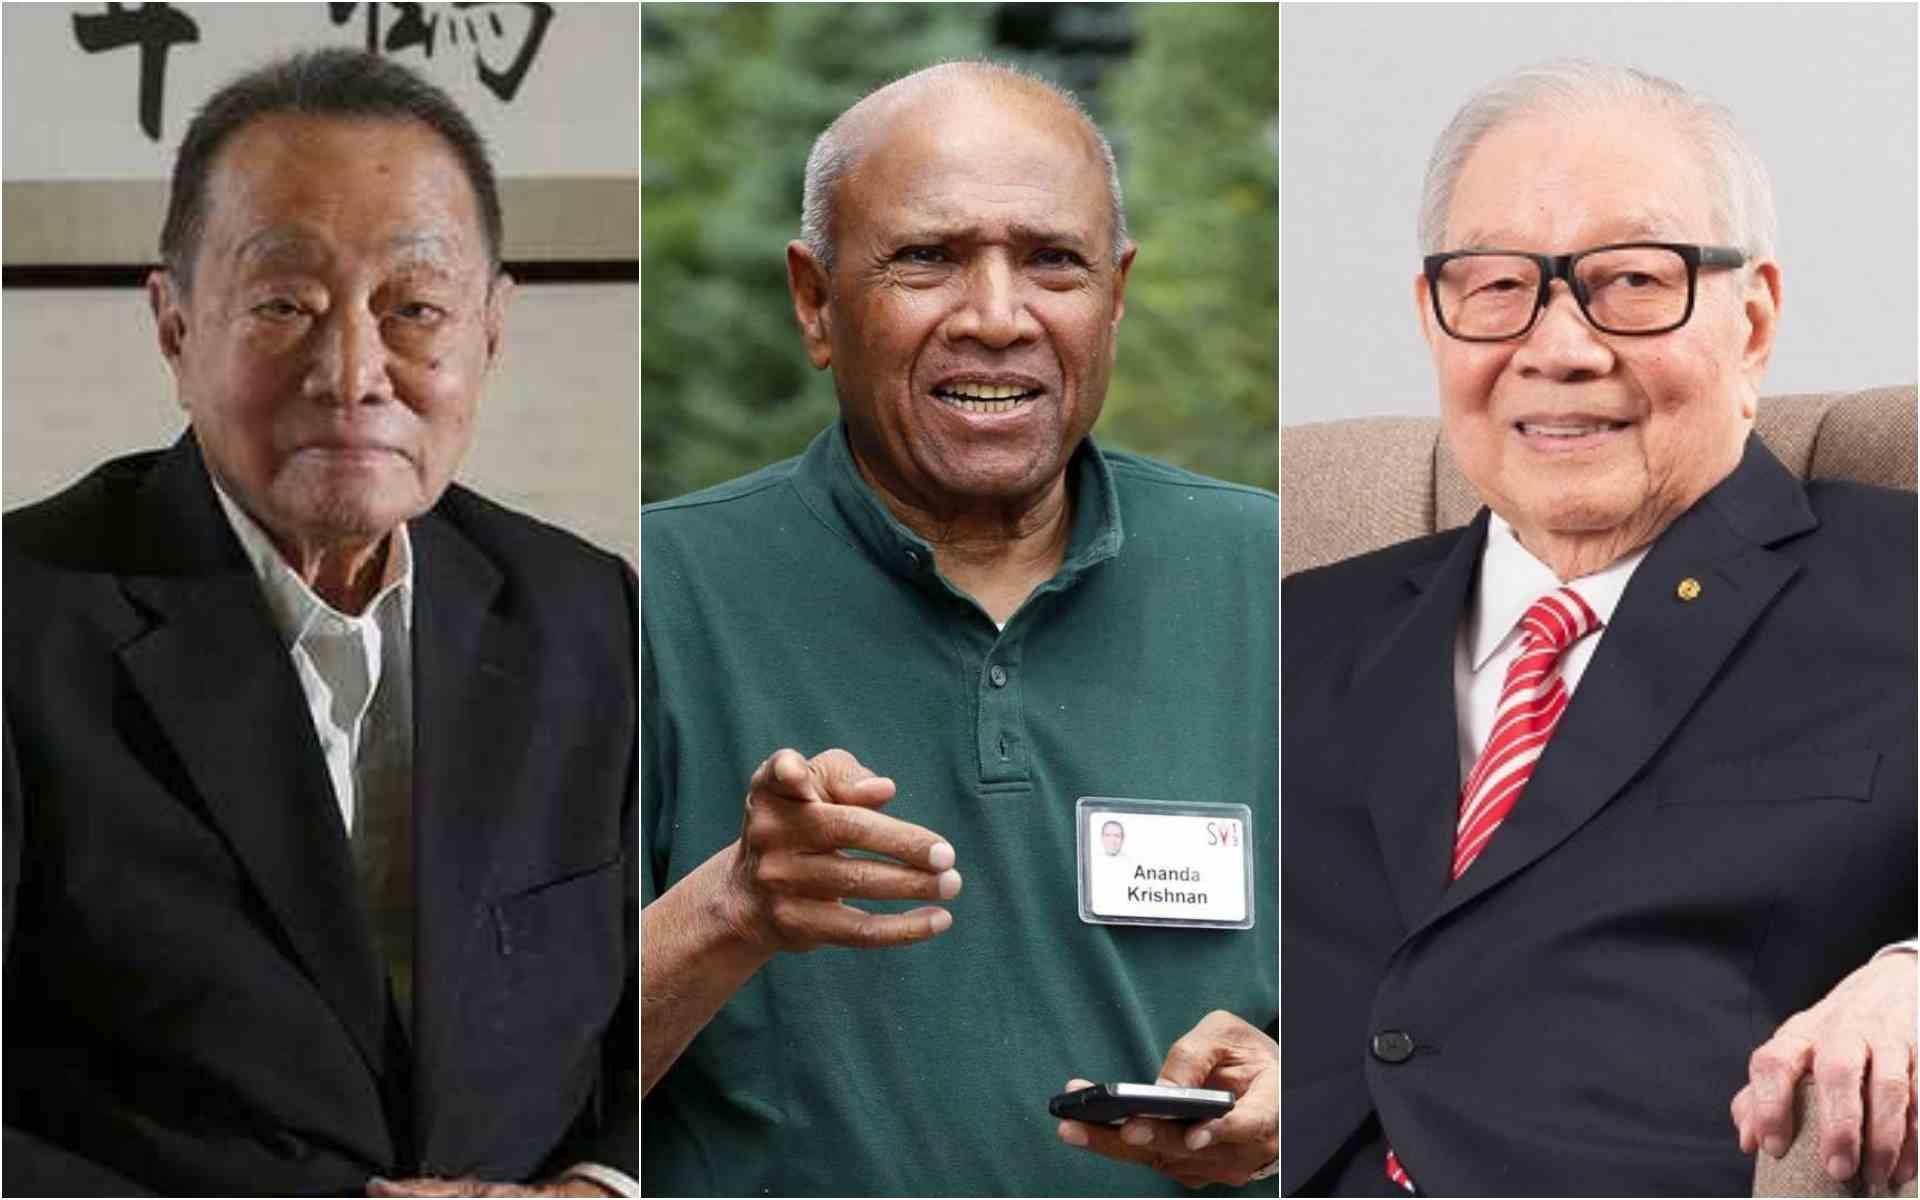 10 Of Malaysia's Richest, According To Forbes' 2021 List